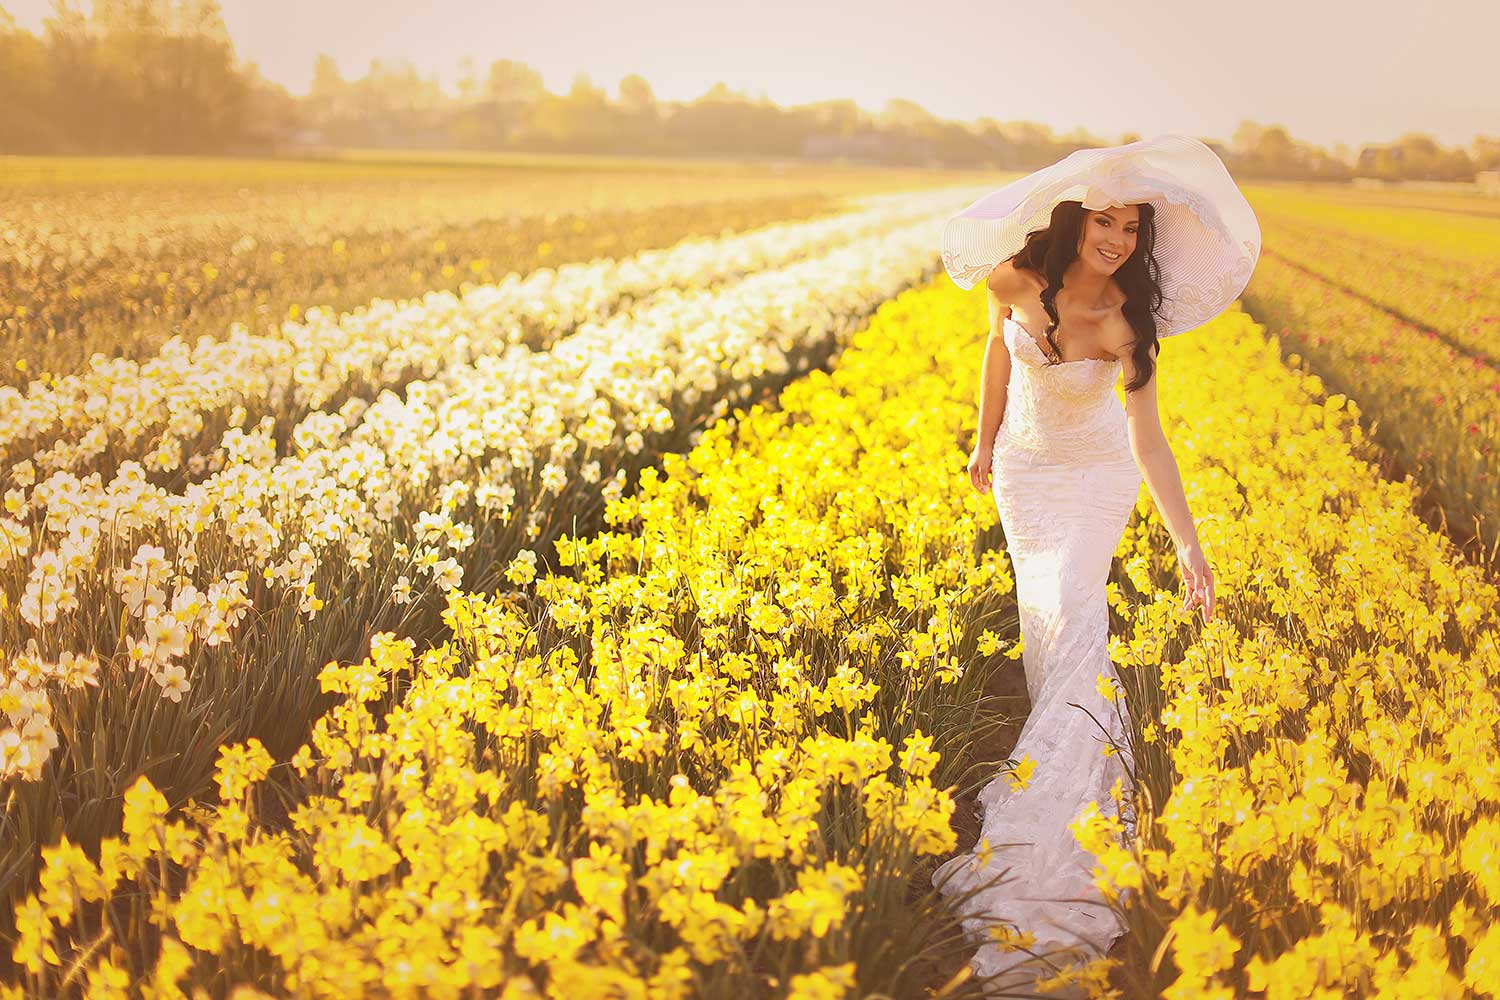 The bride and the flower field